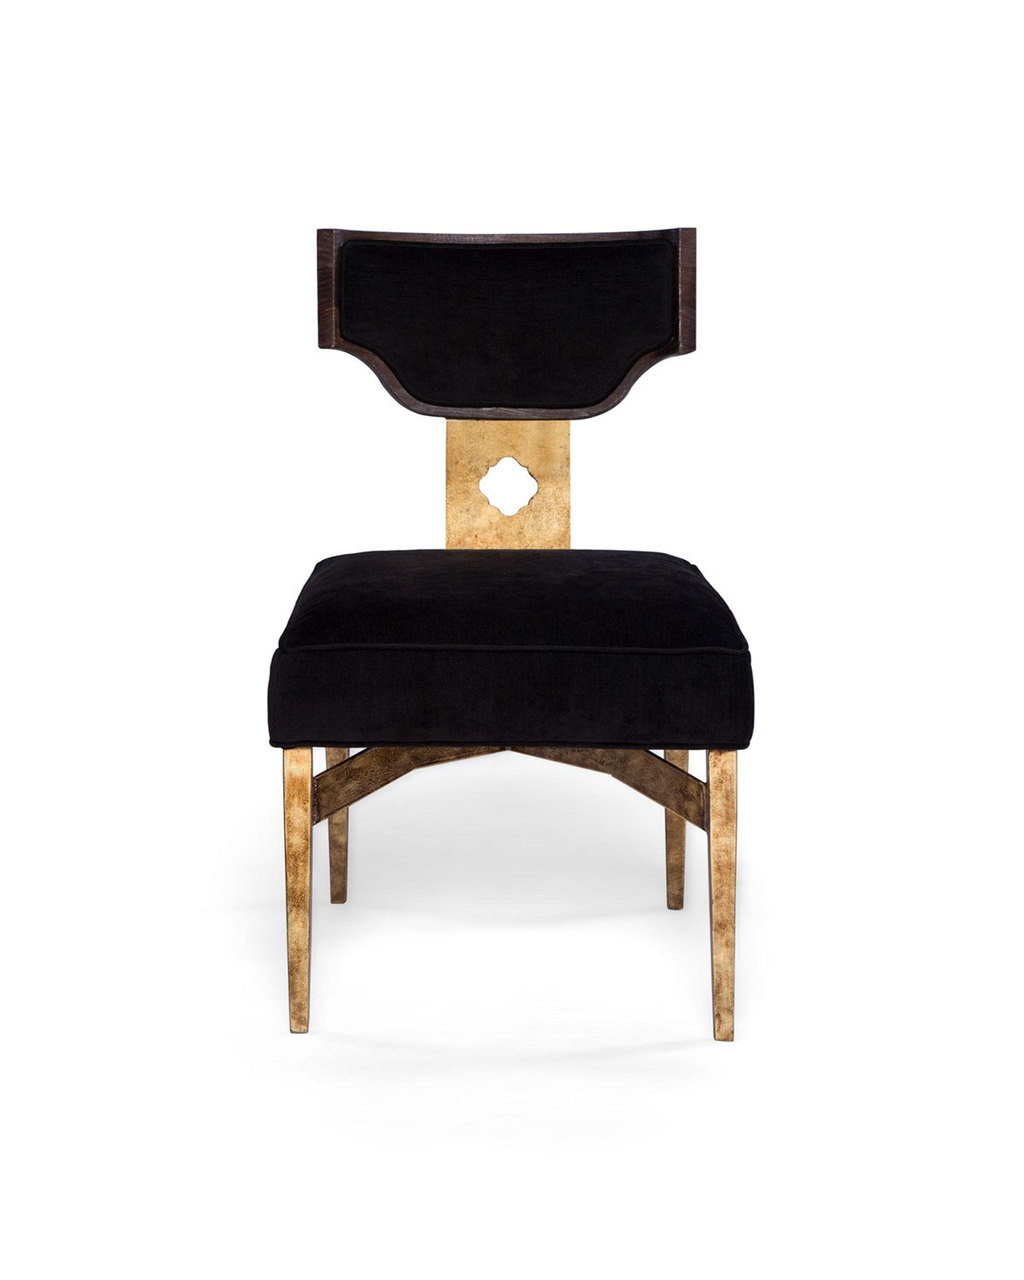 Amazing Casablanca Desk Chair Caraccident5 Cool Chair Designs And Ideas Caraccident5Info